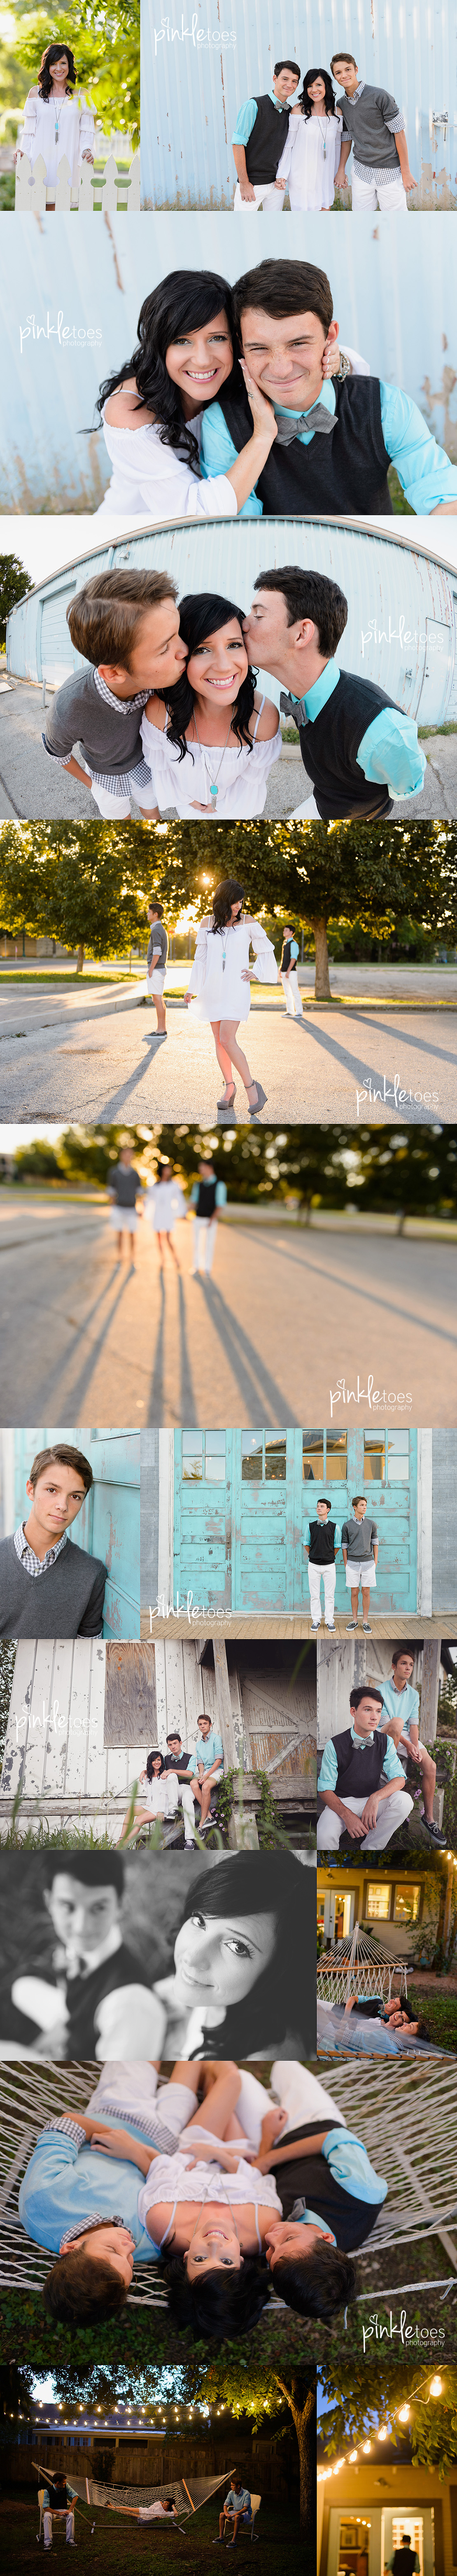 georgetown-family-photographer-photo-session-hammock-lights-senior-high-school-photographer